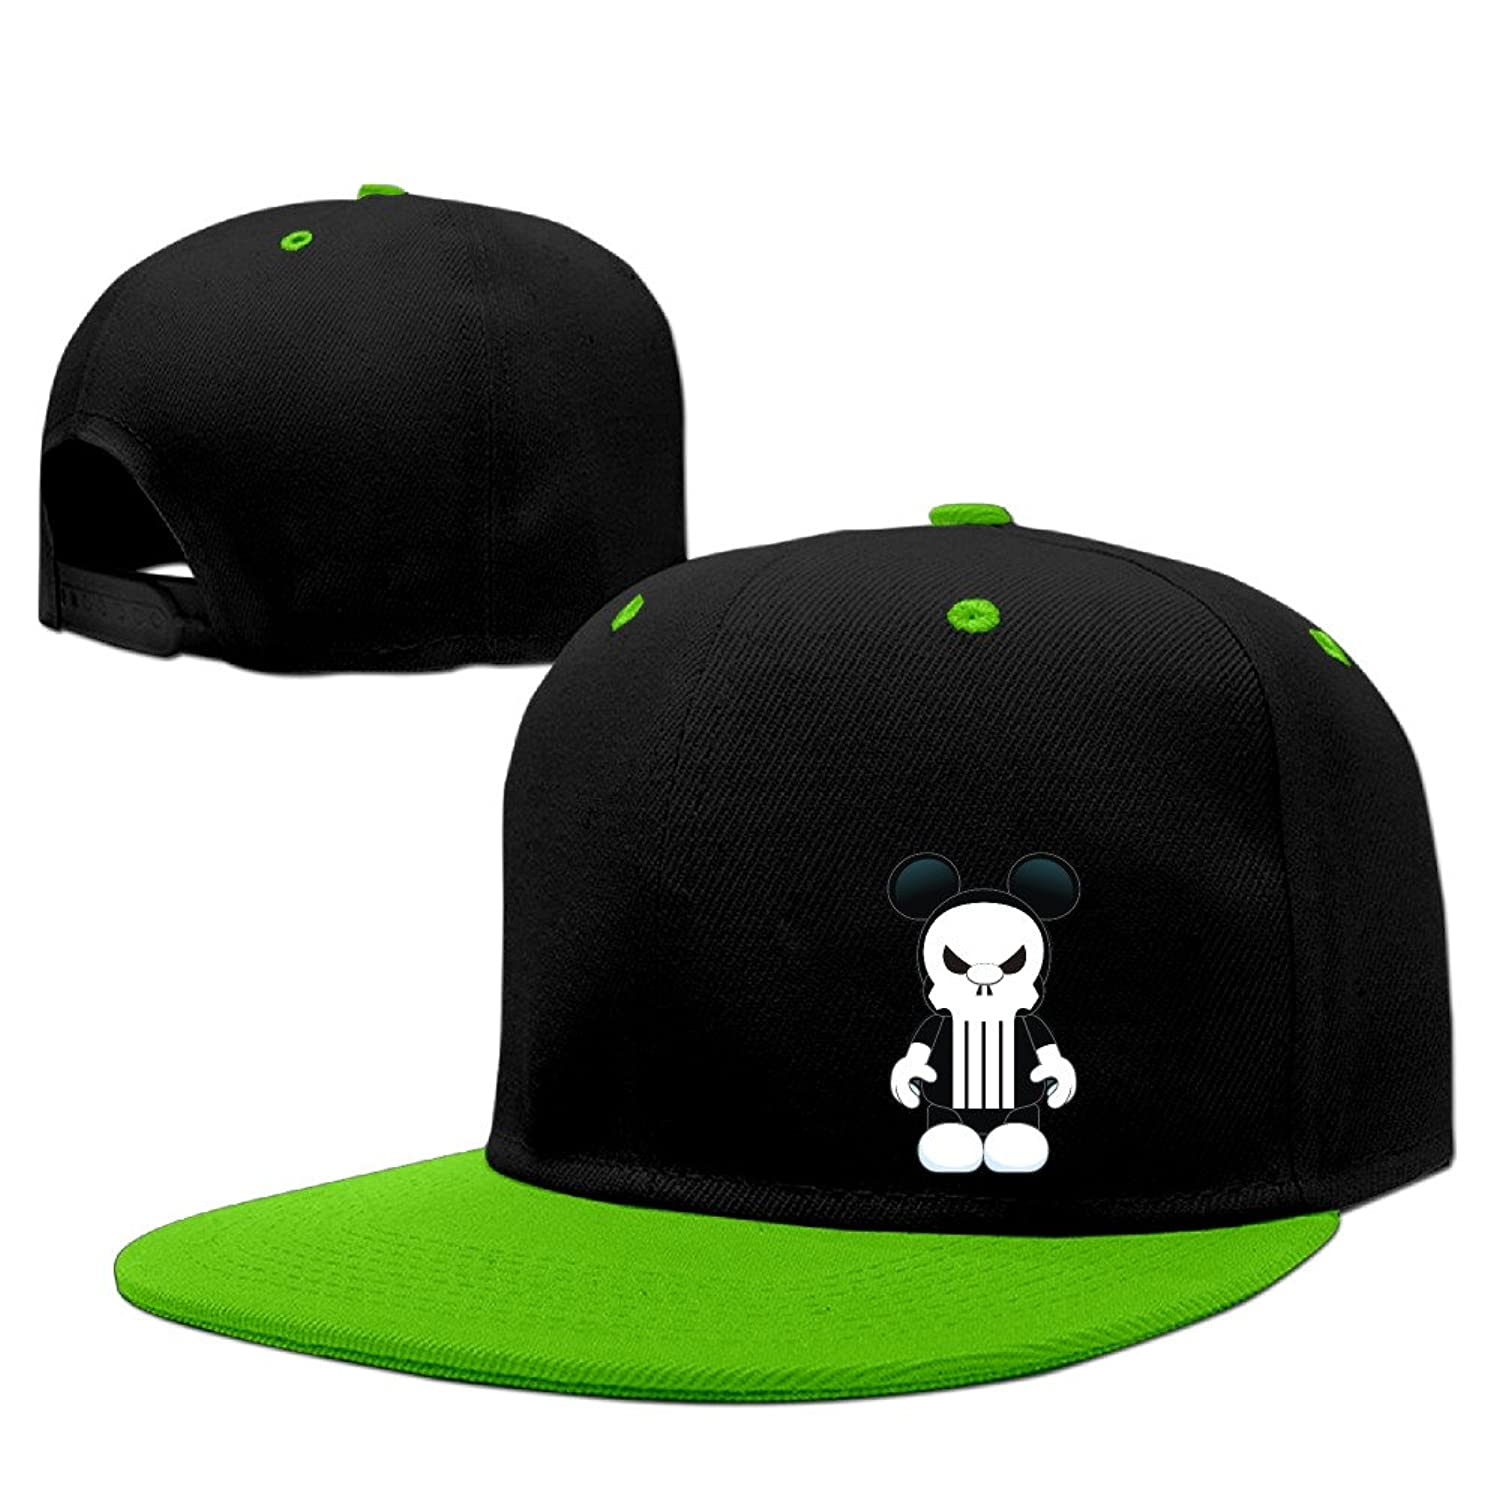 POPYol Punisher Snapback Adjustable Hip Pop Baseball Caps Hats For Unisex